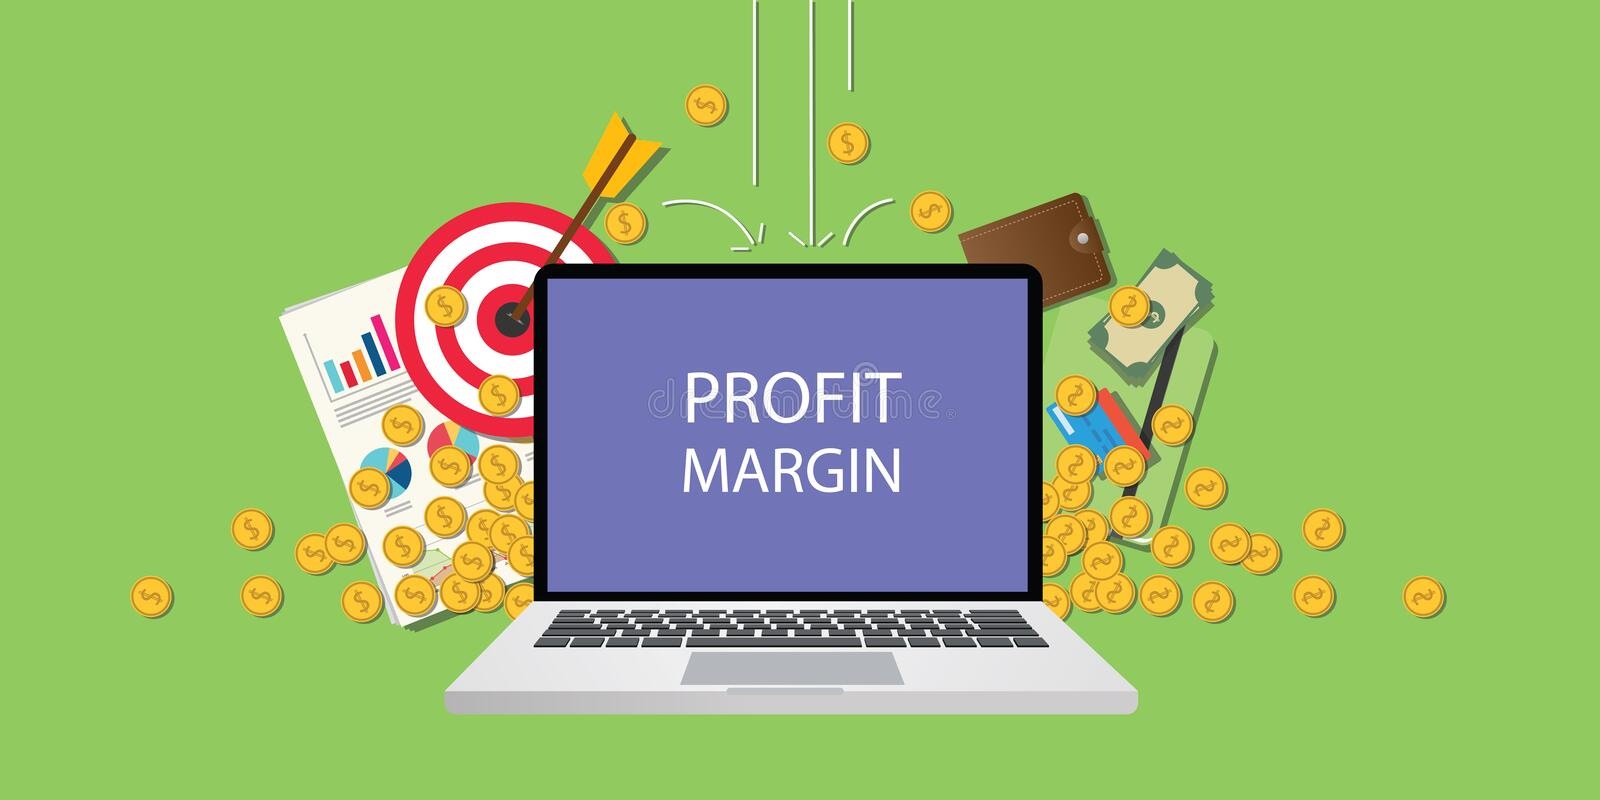 Profit margin concept illustration with laptop text on screen gold coin money royalty free illustration